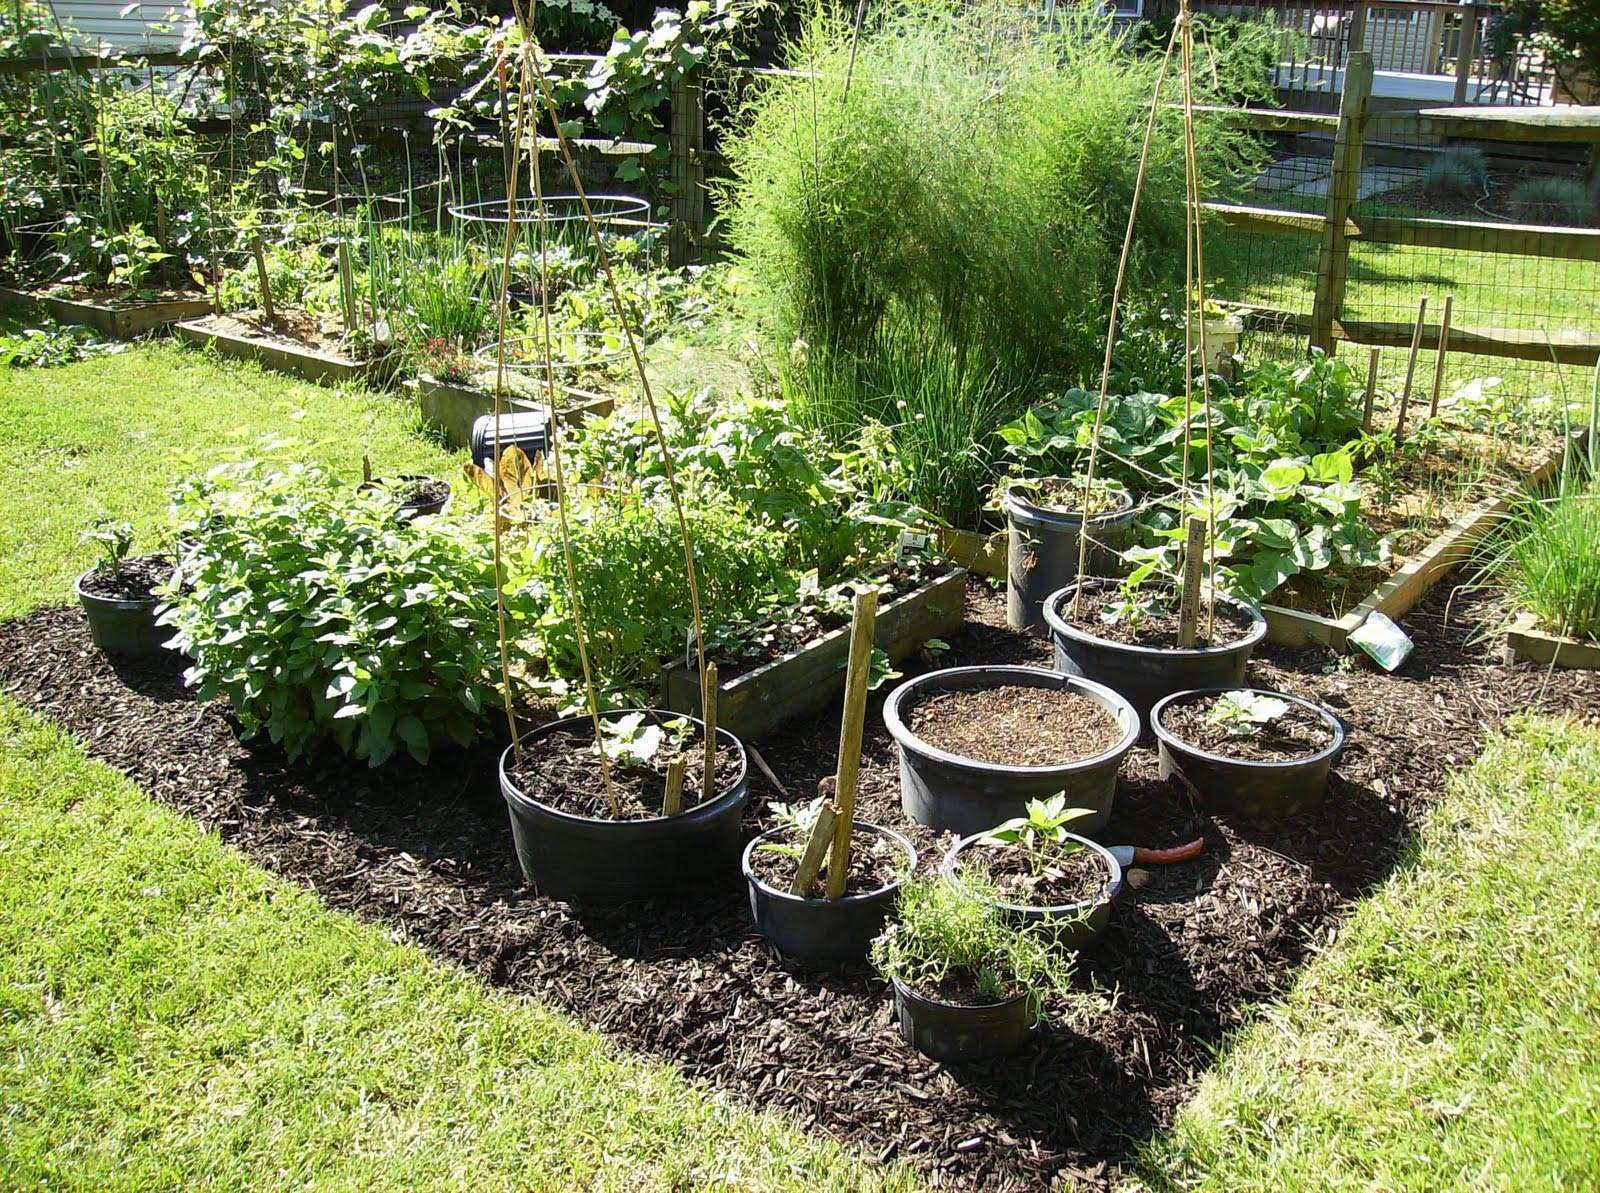 Best Soil for Vegetable Garden in Containers